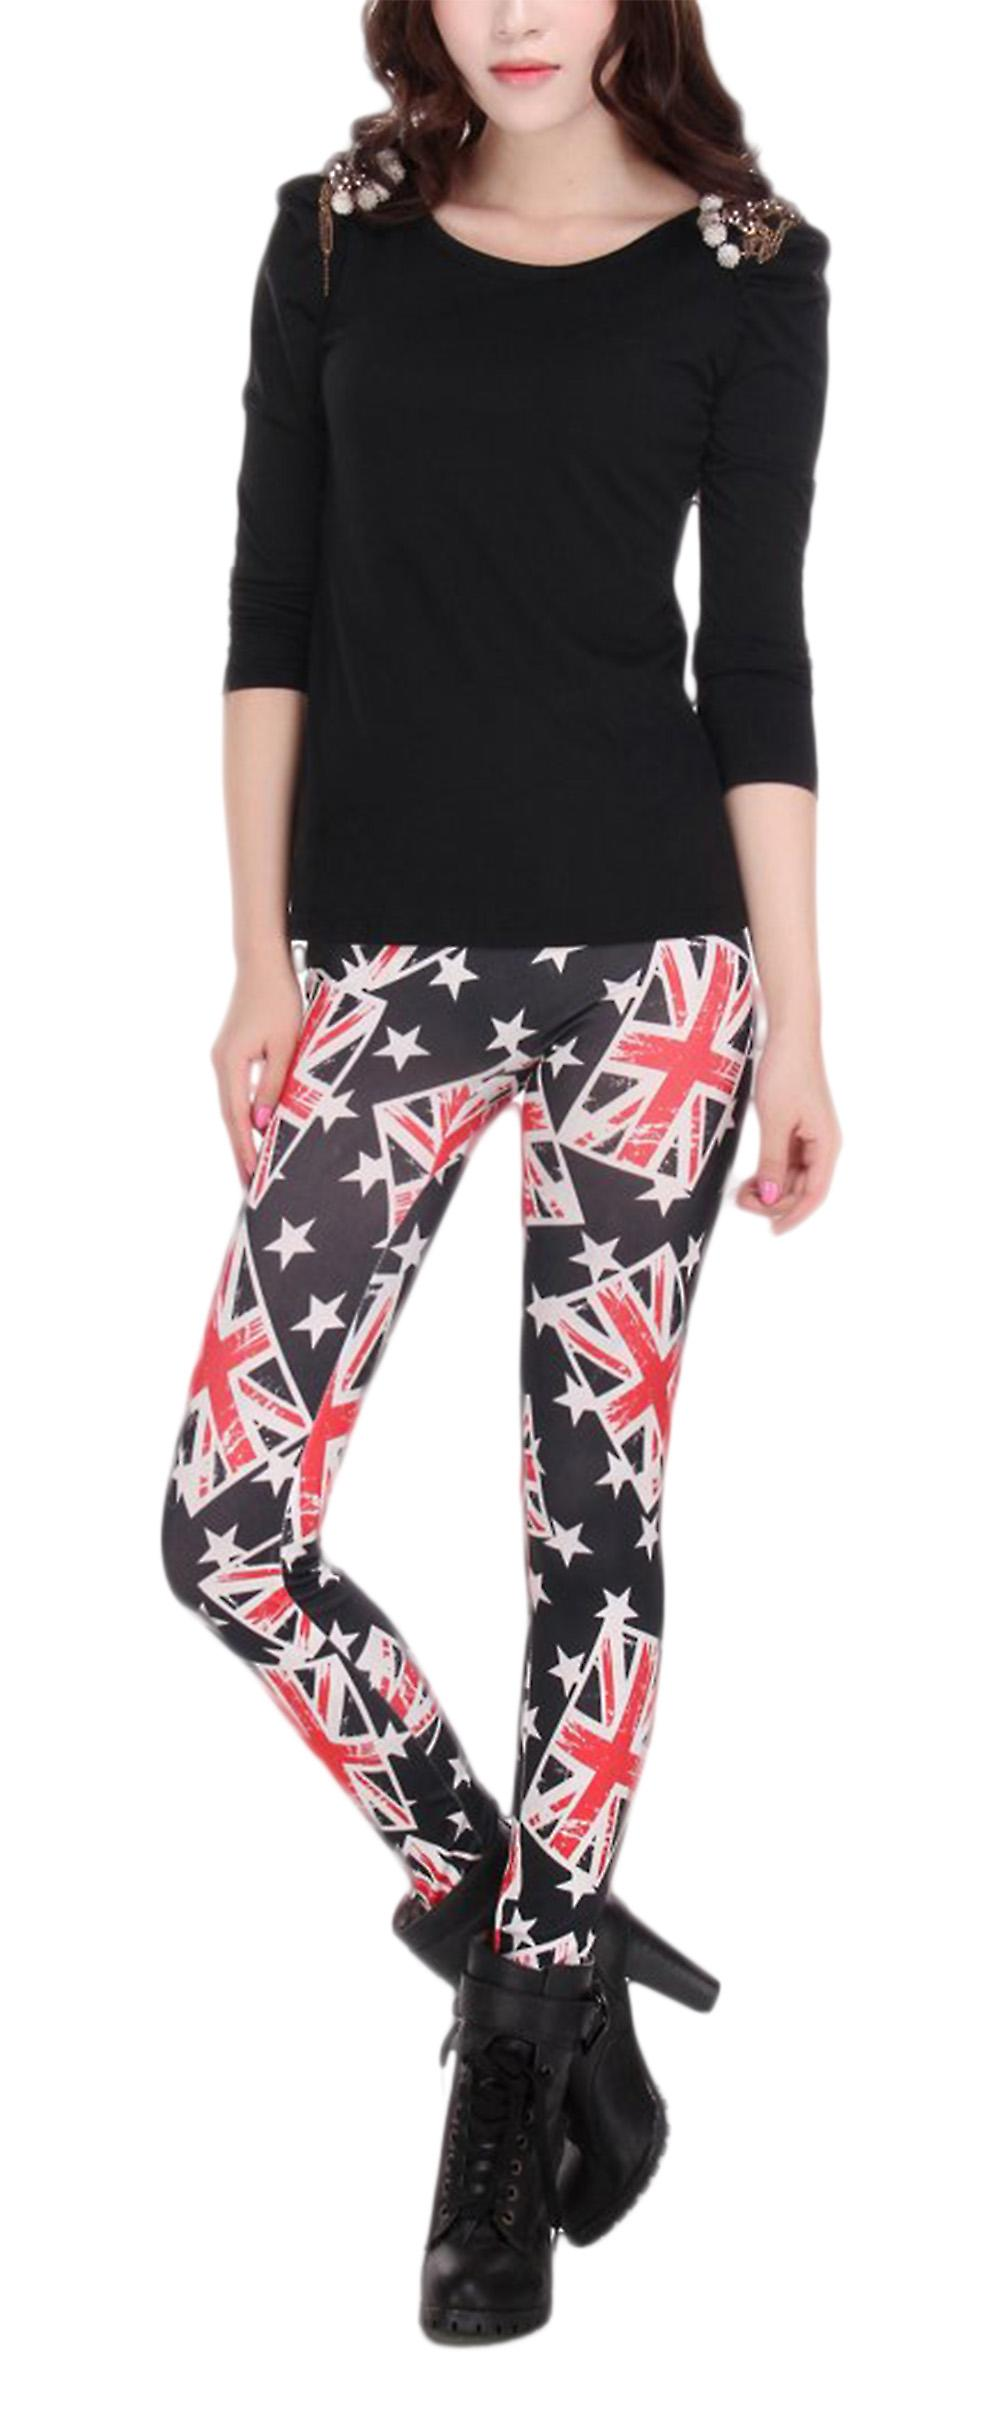 Waooh - Printed leggings English flag Bih